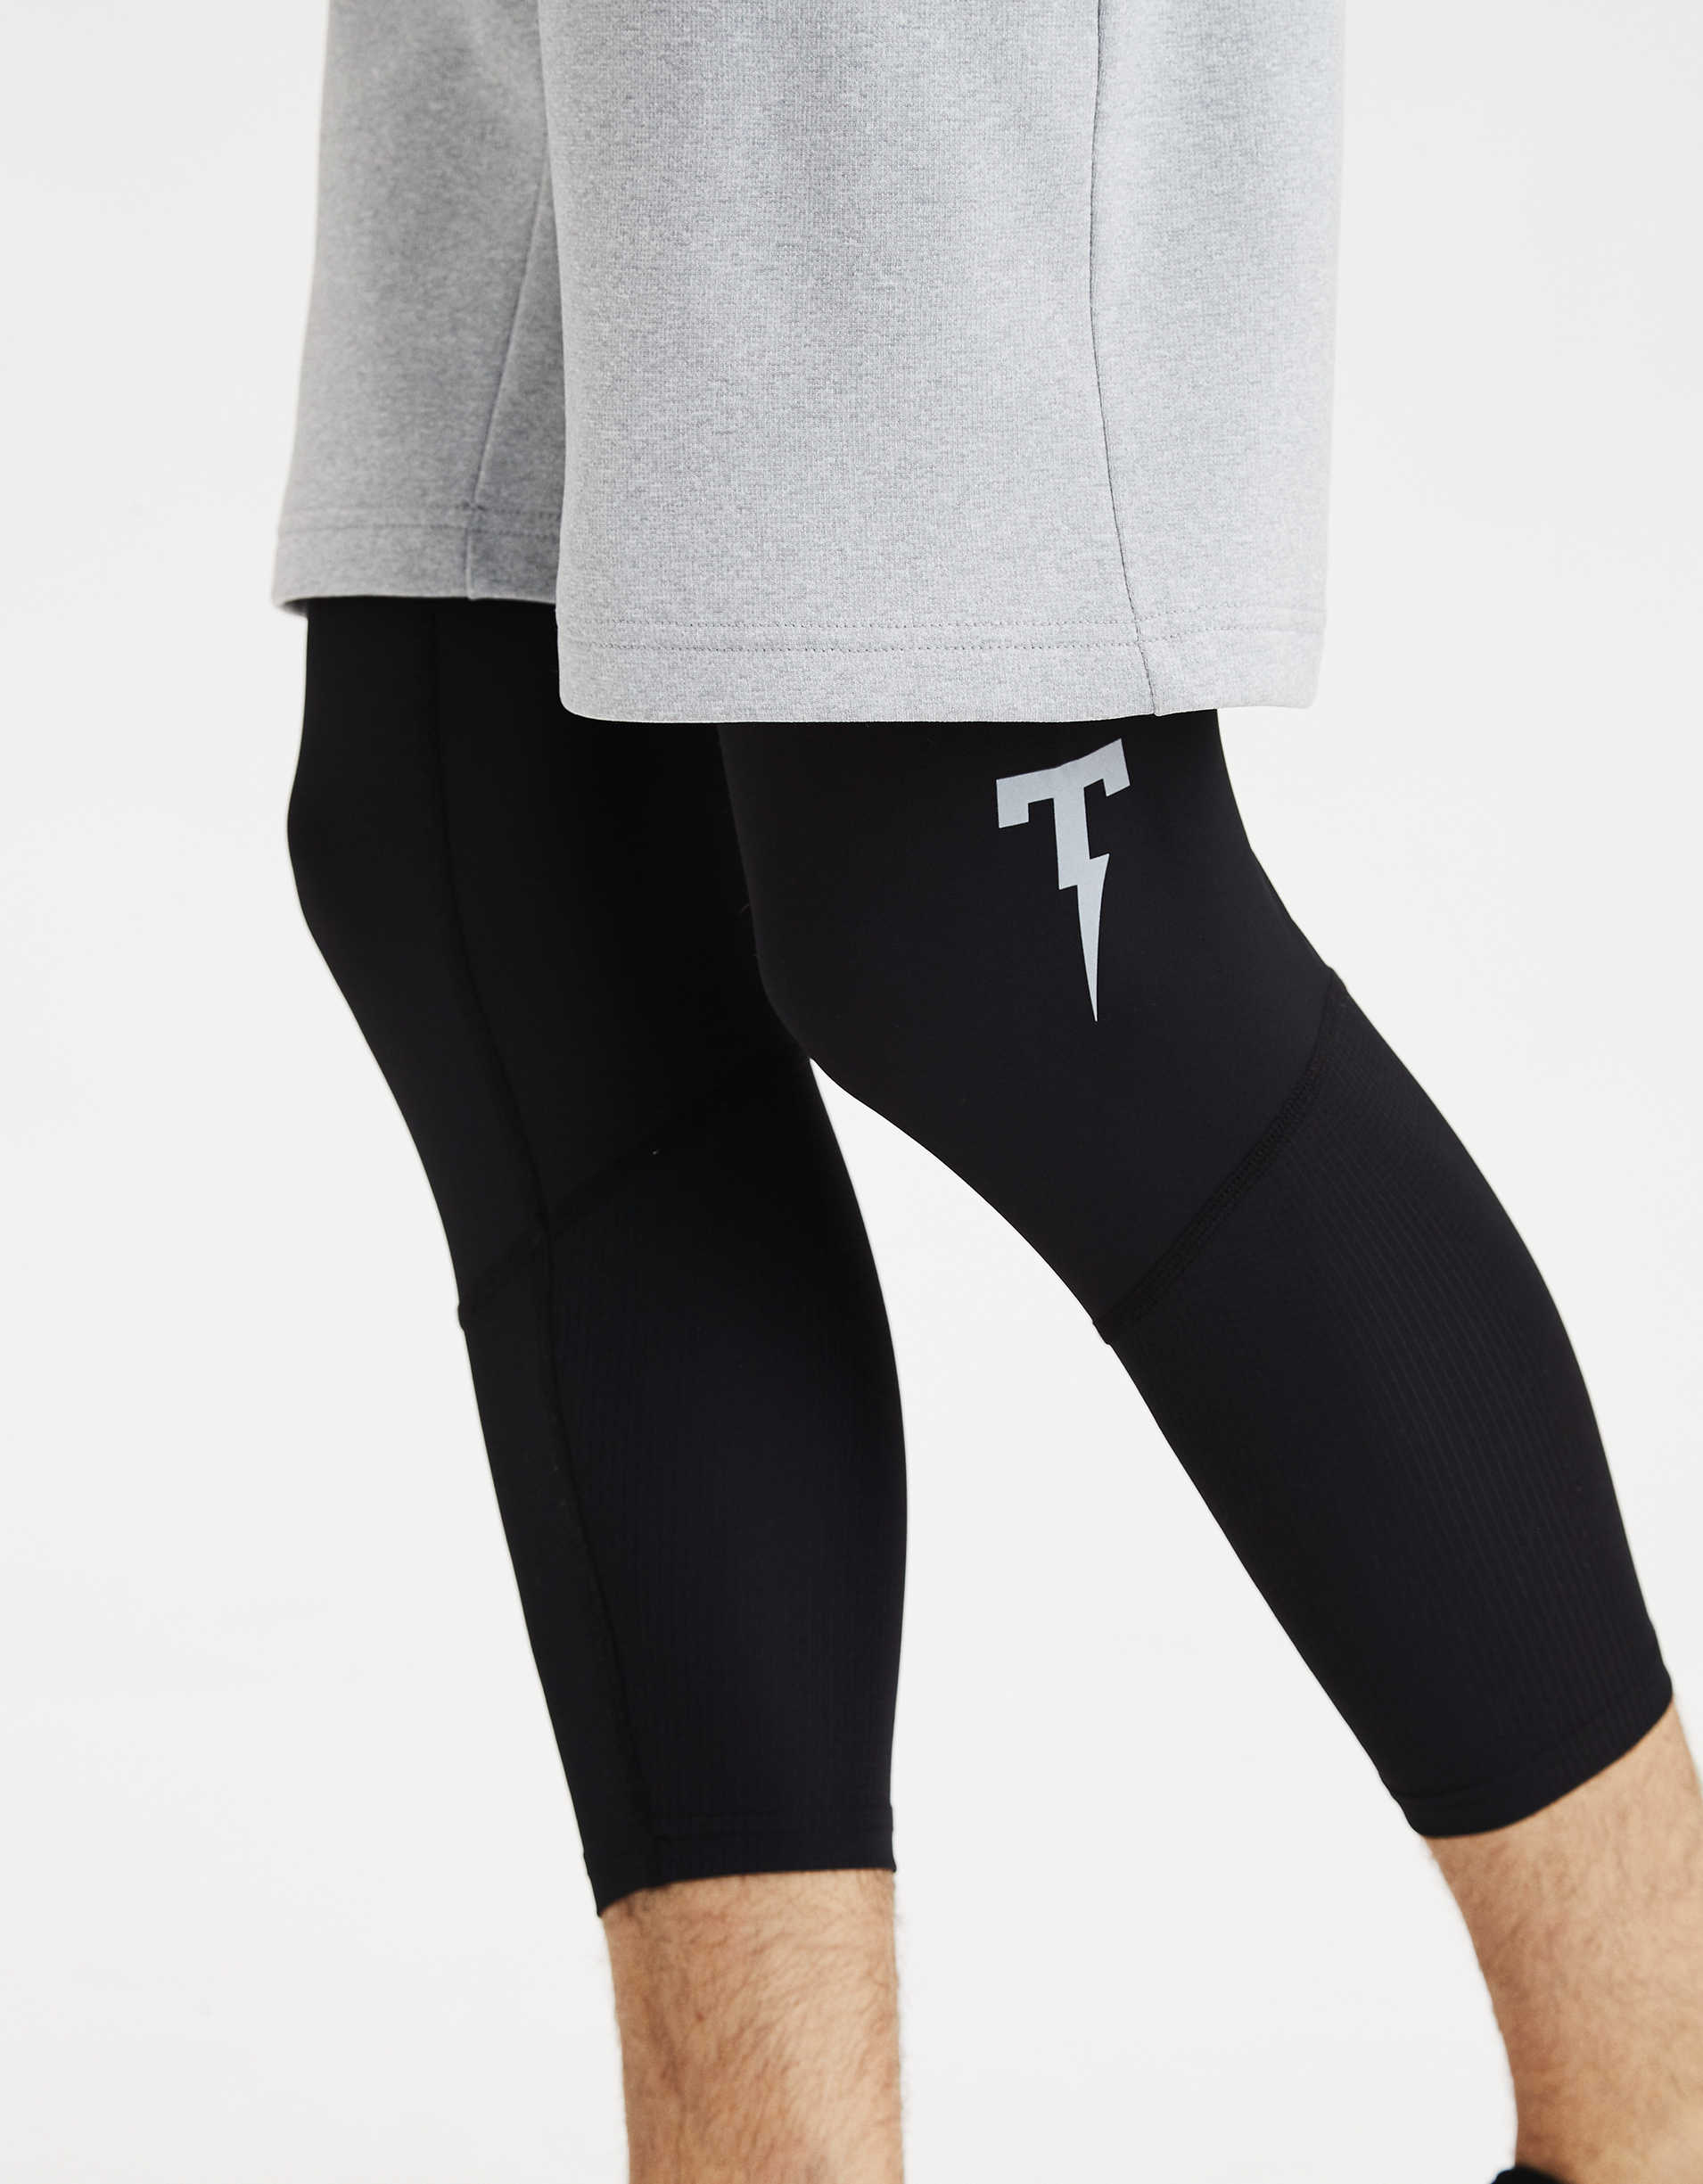 TACKMA Cropped Compression Pant